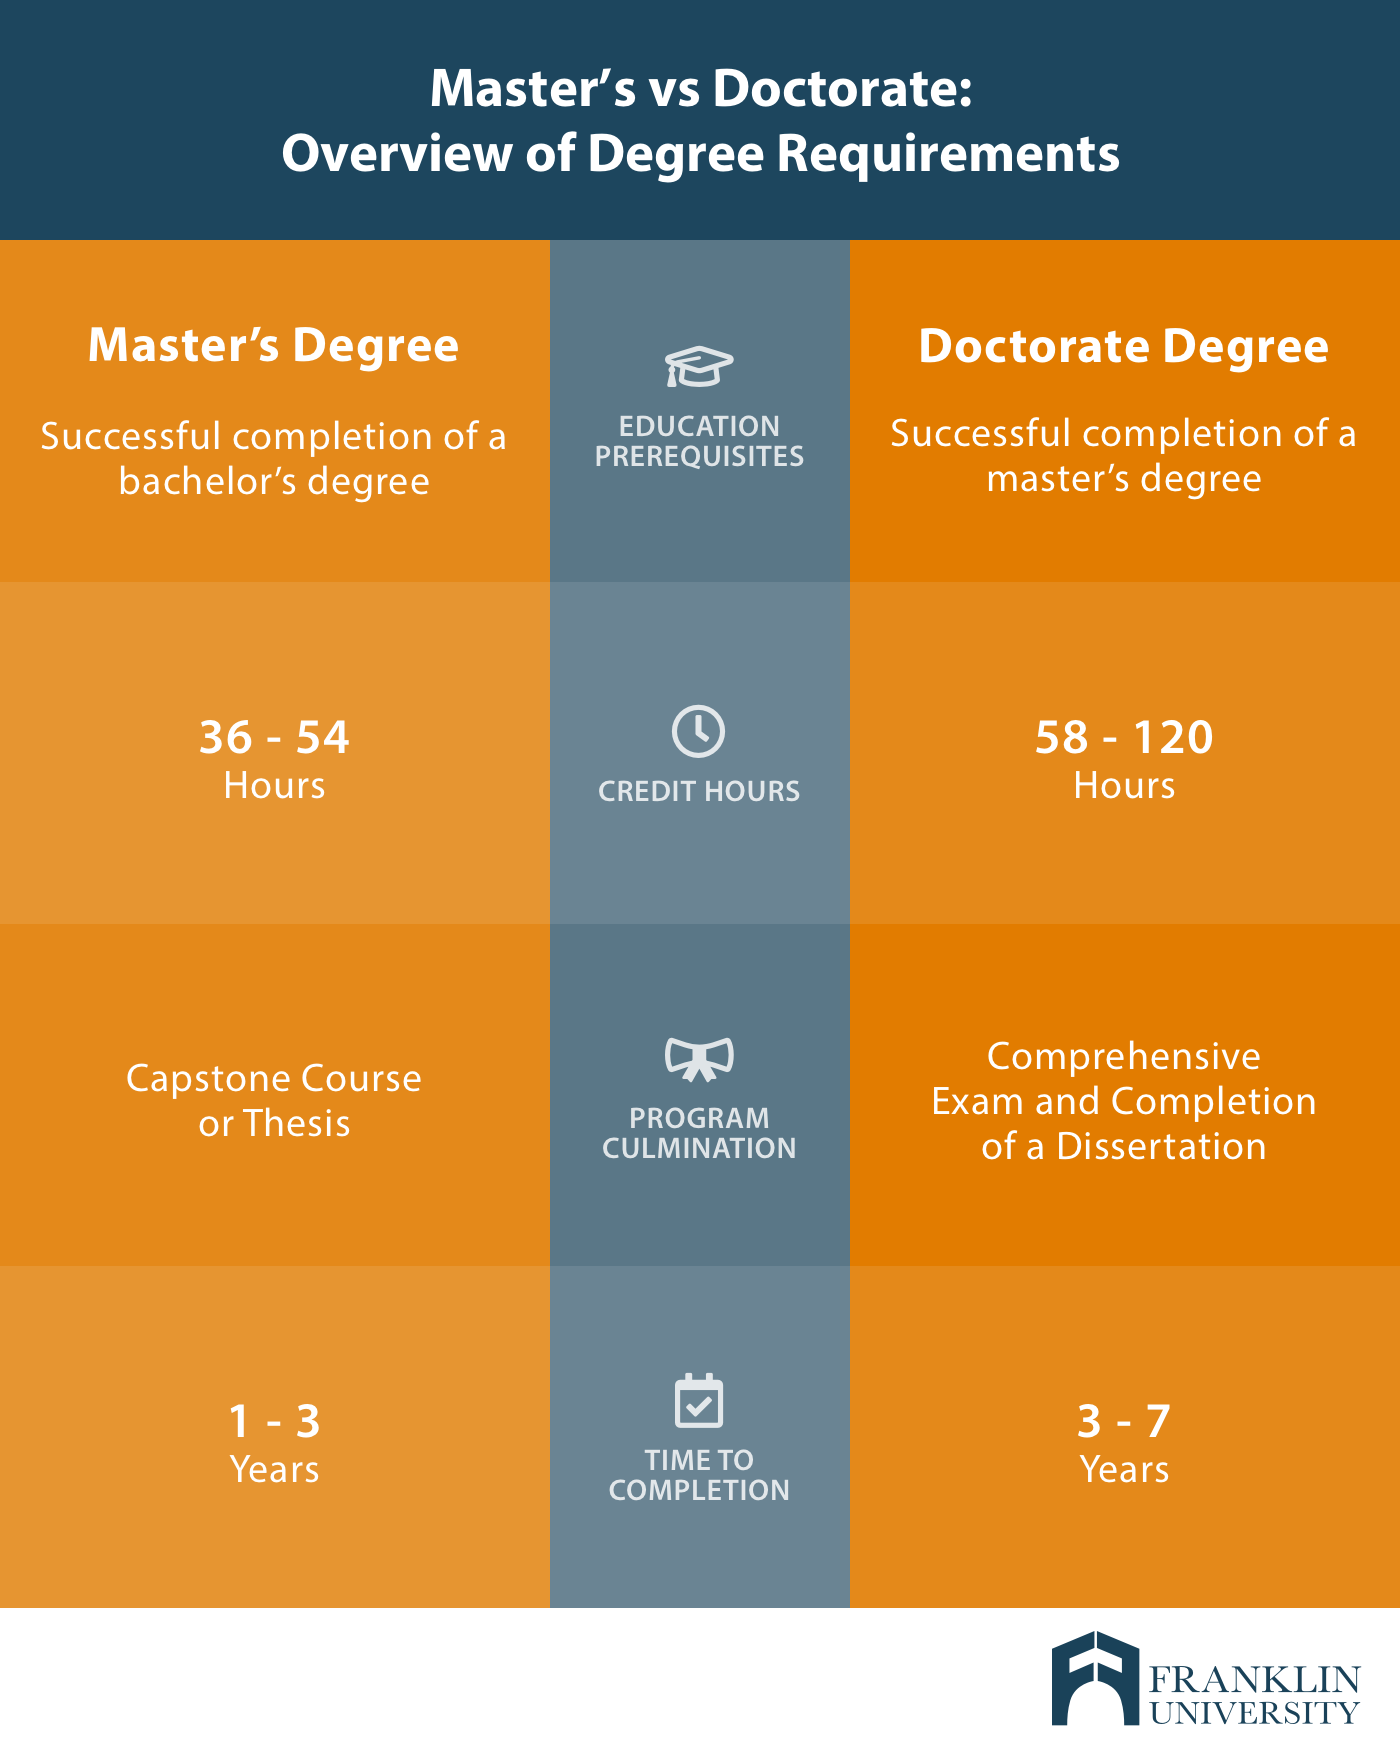 Masters vs Doctorate_ Overview of Degree Requirements2.png